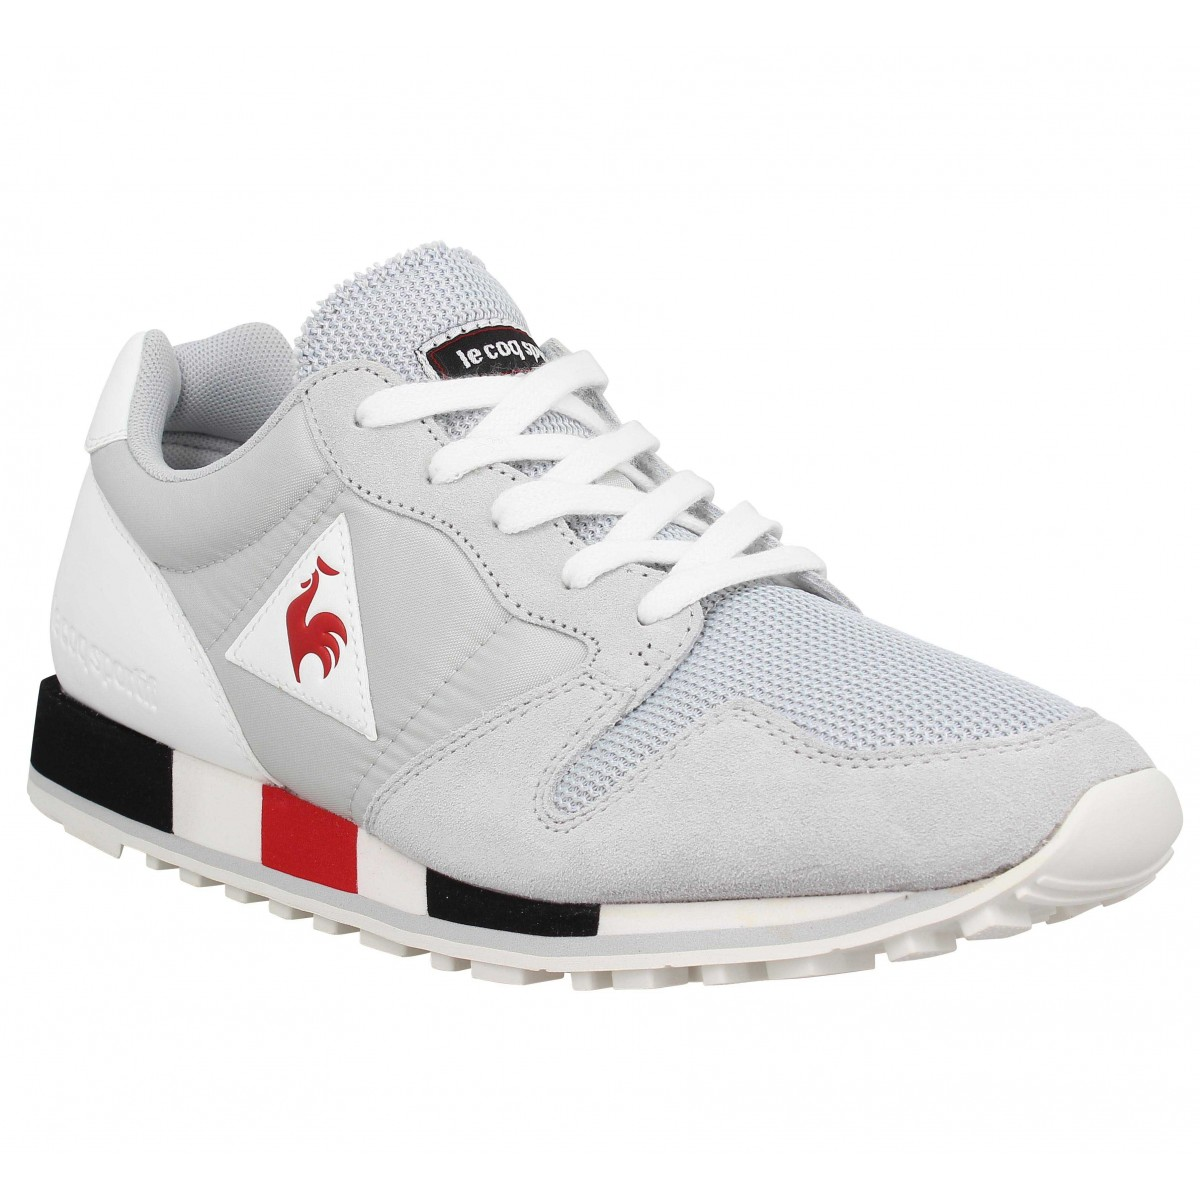 Le coq sportif Sneakers Homme GALET, 42